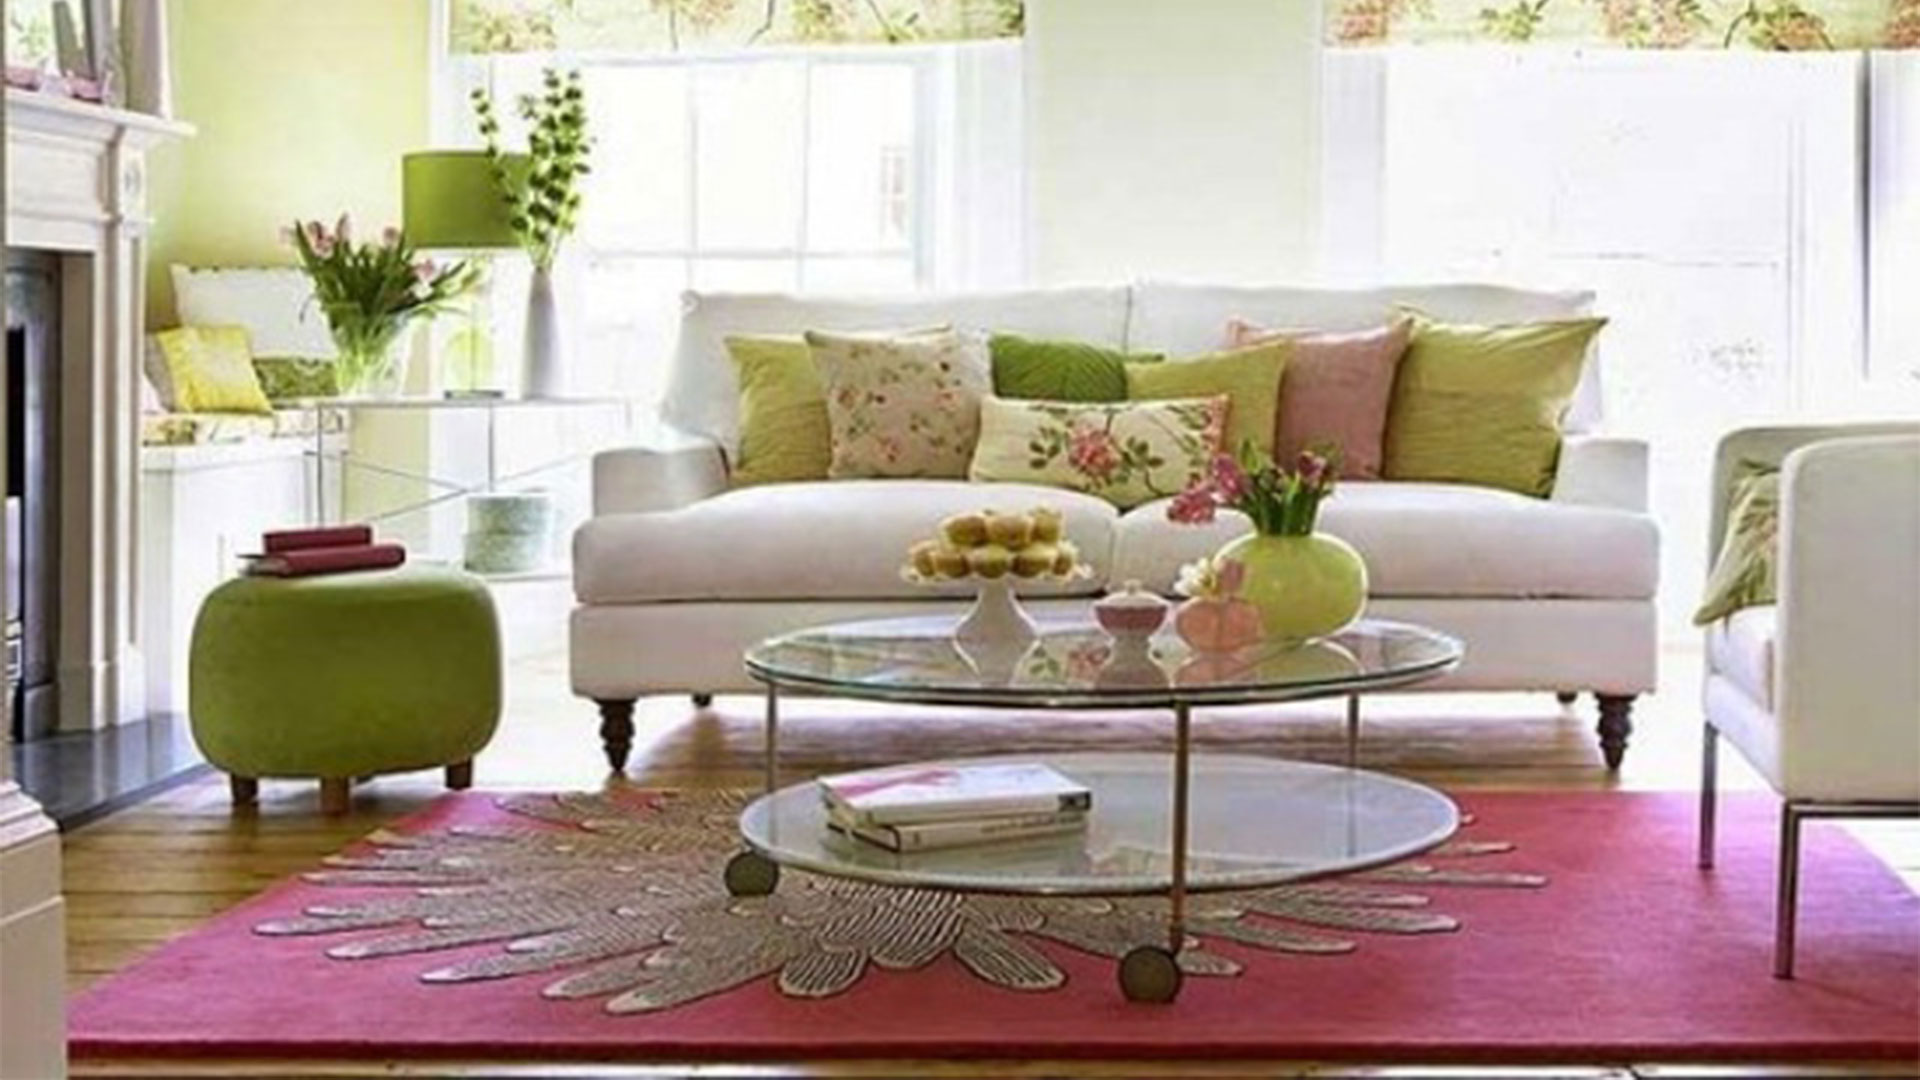 36 Living Room Decorating Ideas That Smells Like Spring. Low Price Living Room Sets. Cabinets In Living Room Ideas. Designs For Small Living Rooms. Decor Ideas For Living Room Apartment. Leopard Living Room Set. Accent Chests For Living Room. Wood Living Room Tables. Decoration For Living Room Table